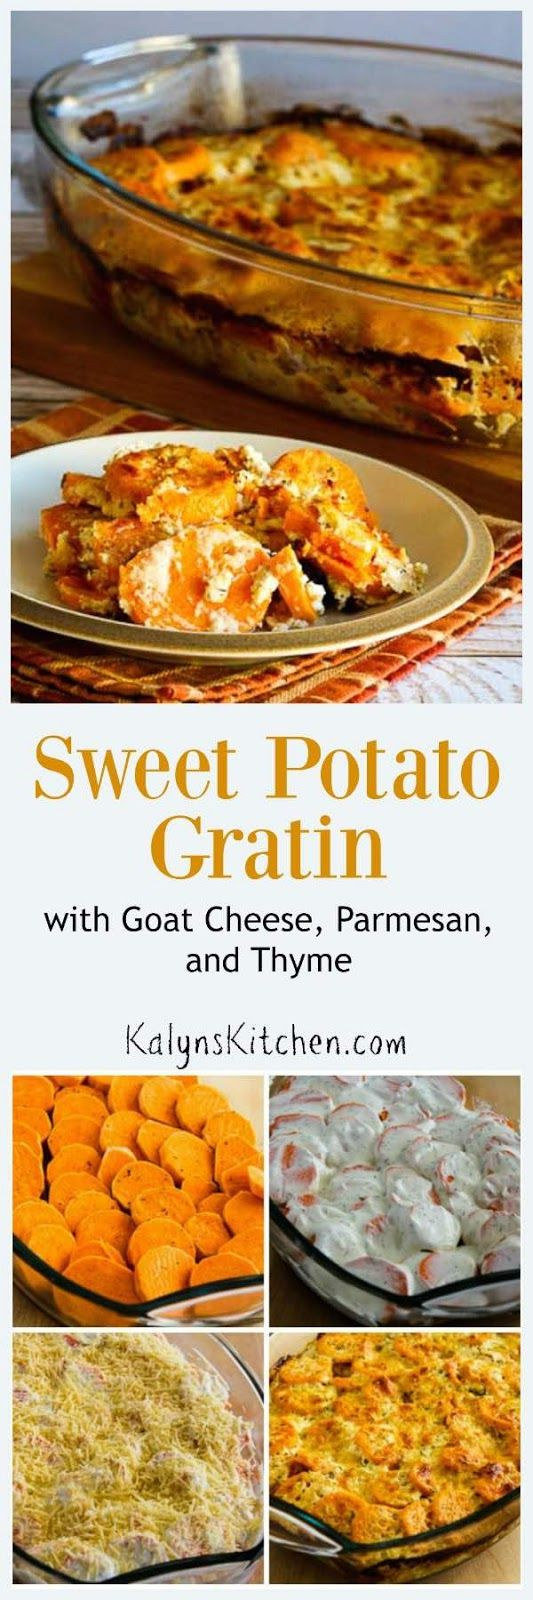 loves this Sweet Potato Gratin with Goat Cheese, Parmesan, and Thyme ...